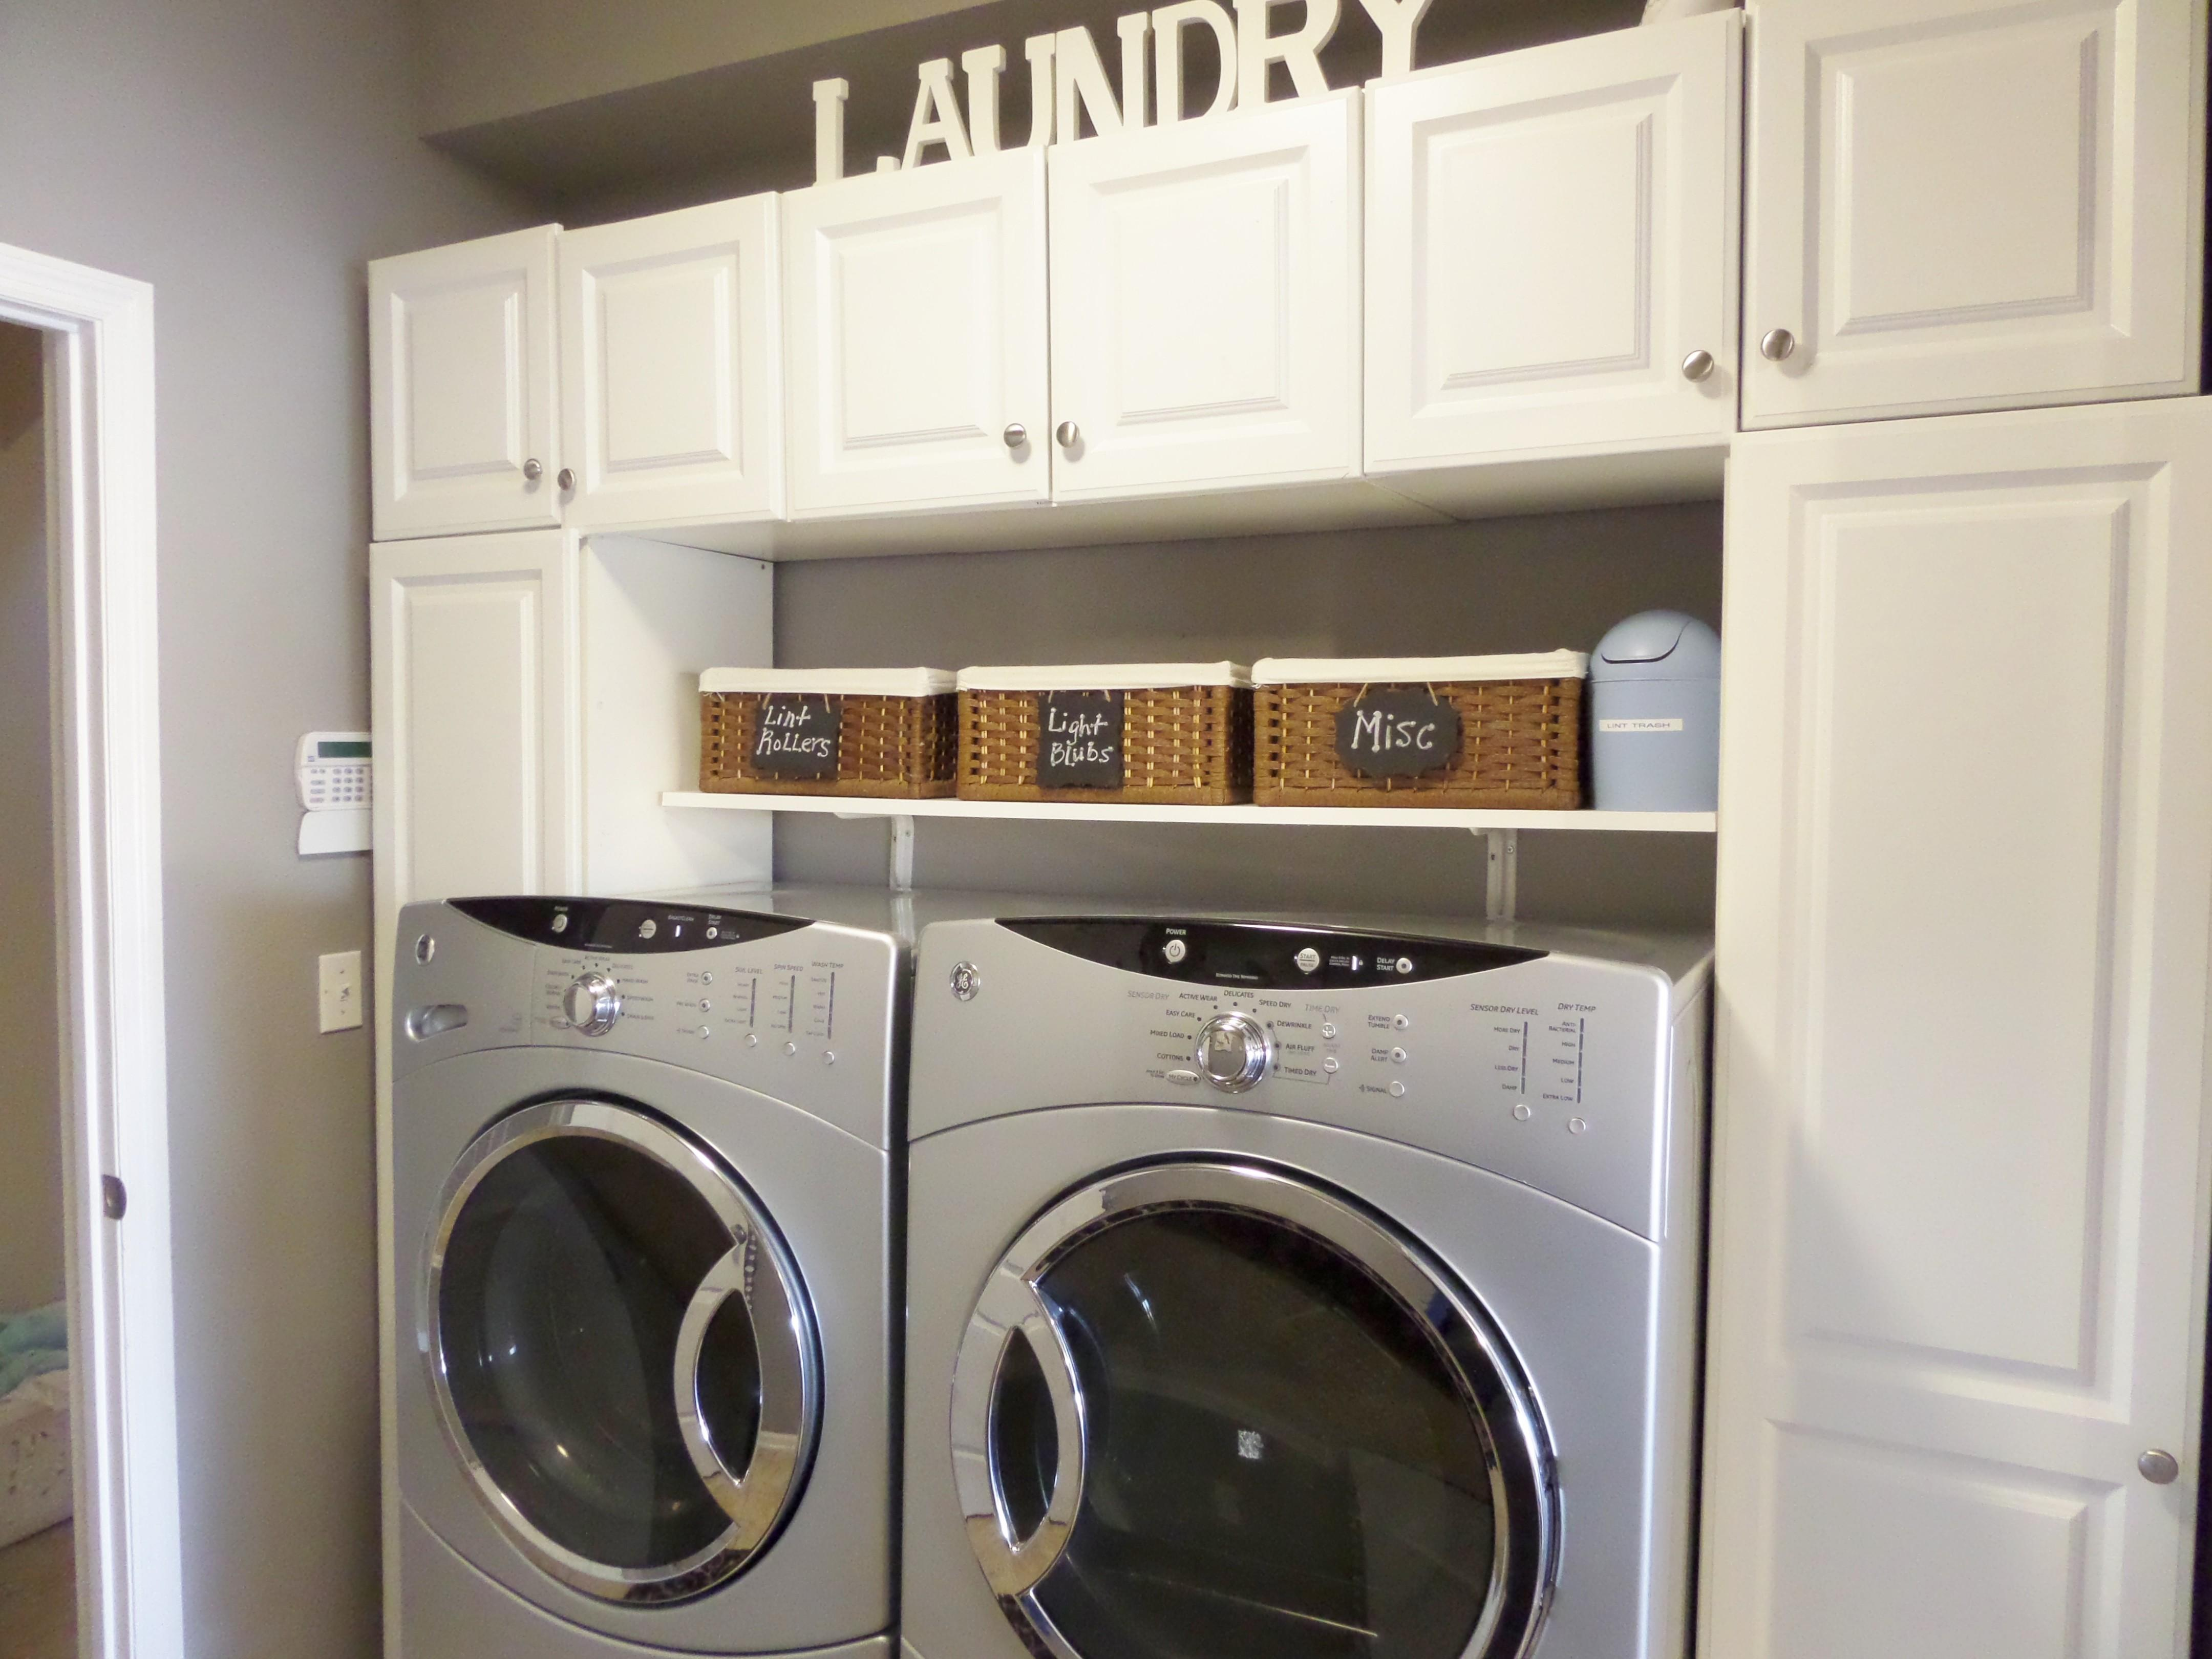 Laundry Room Organization Guest Denise